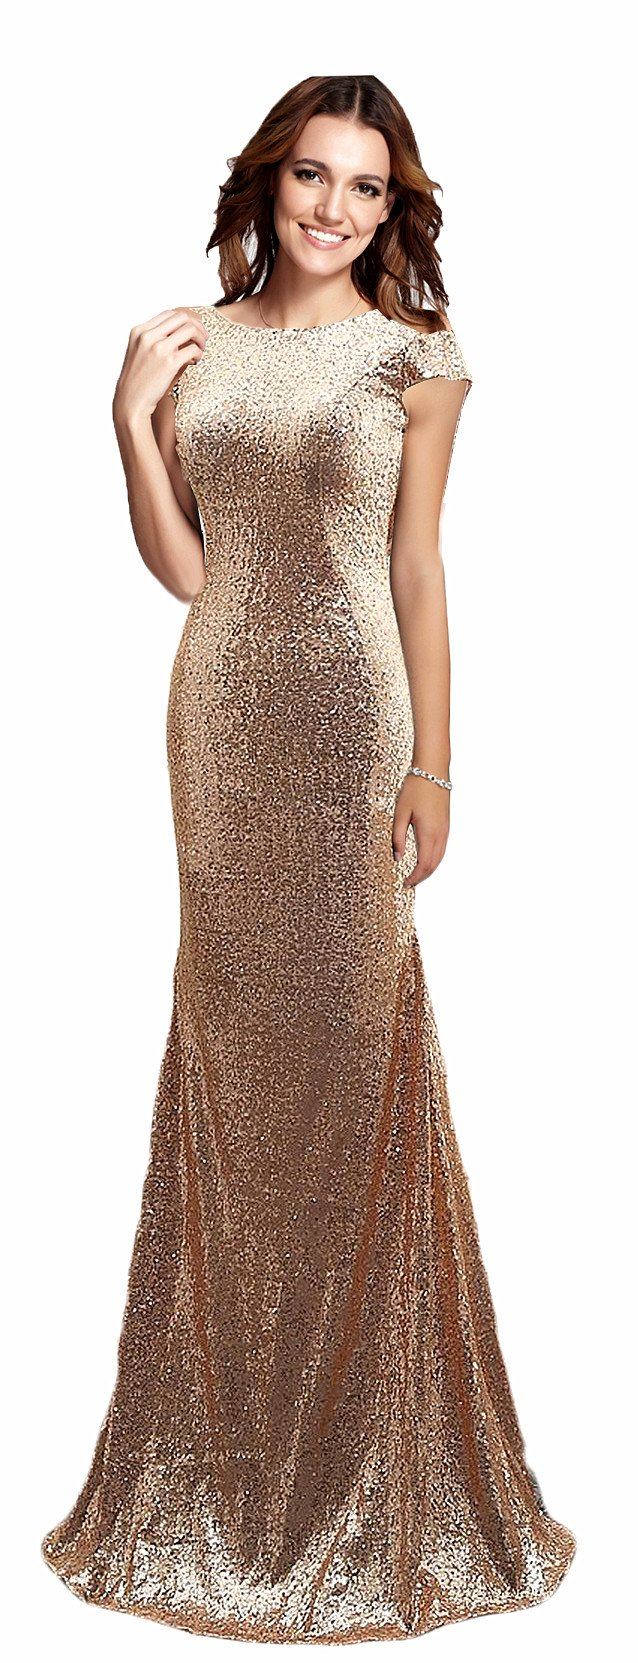 Rong store Women's Long Sequined Mermaid Bridesmaid Dresses Rose Gold US8